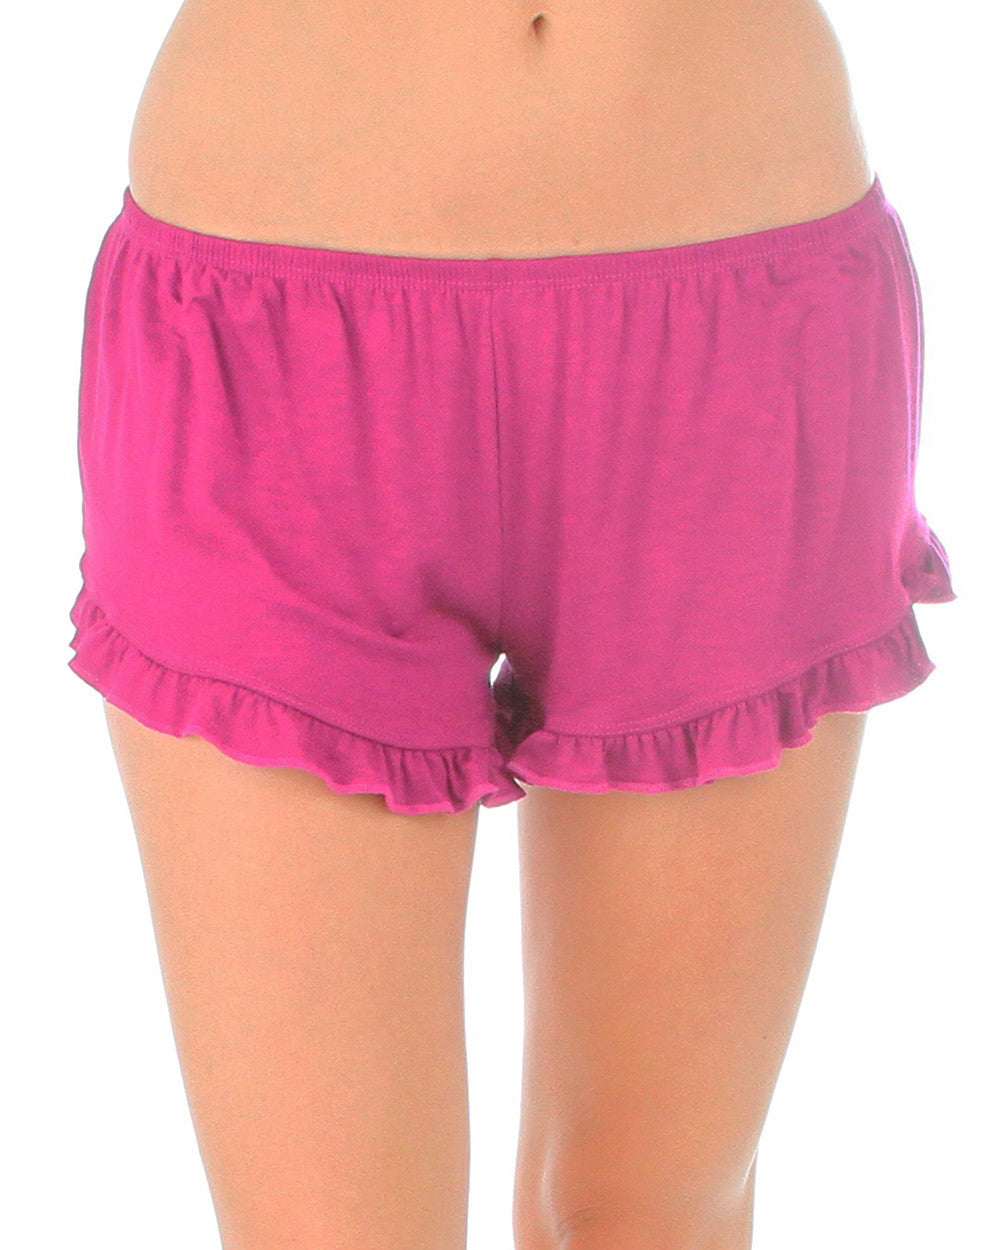 Vodi Shorts With Ruffle Trim In Magenta